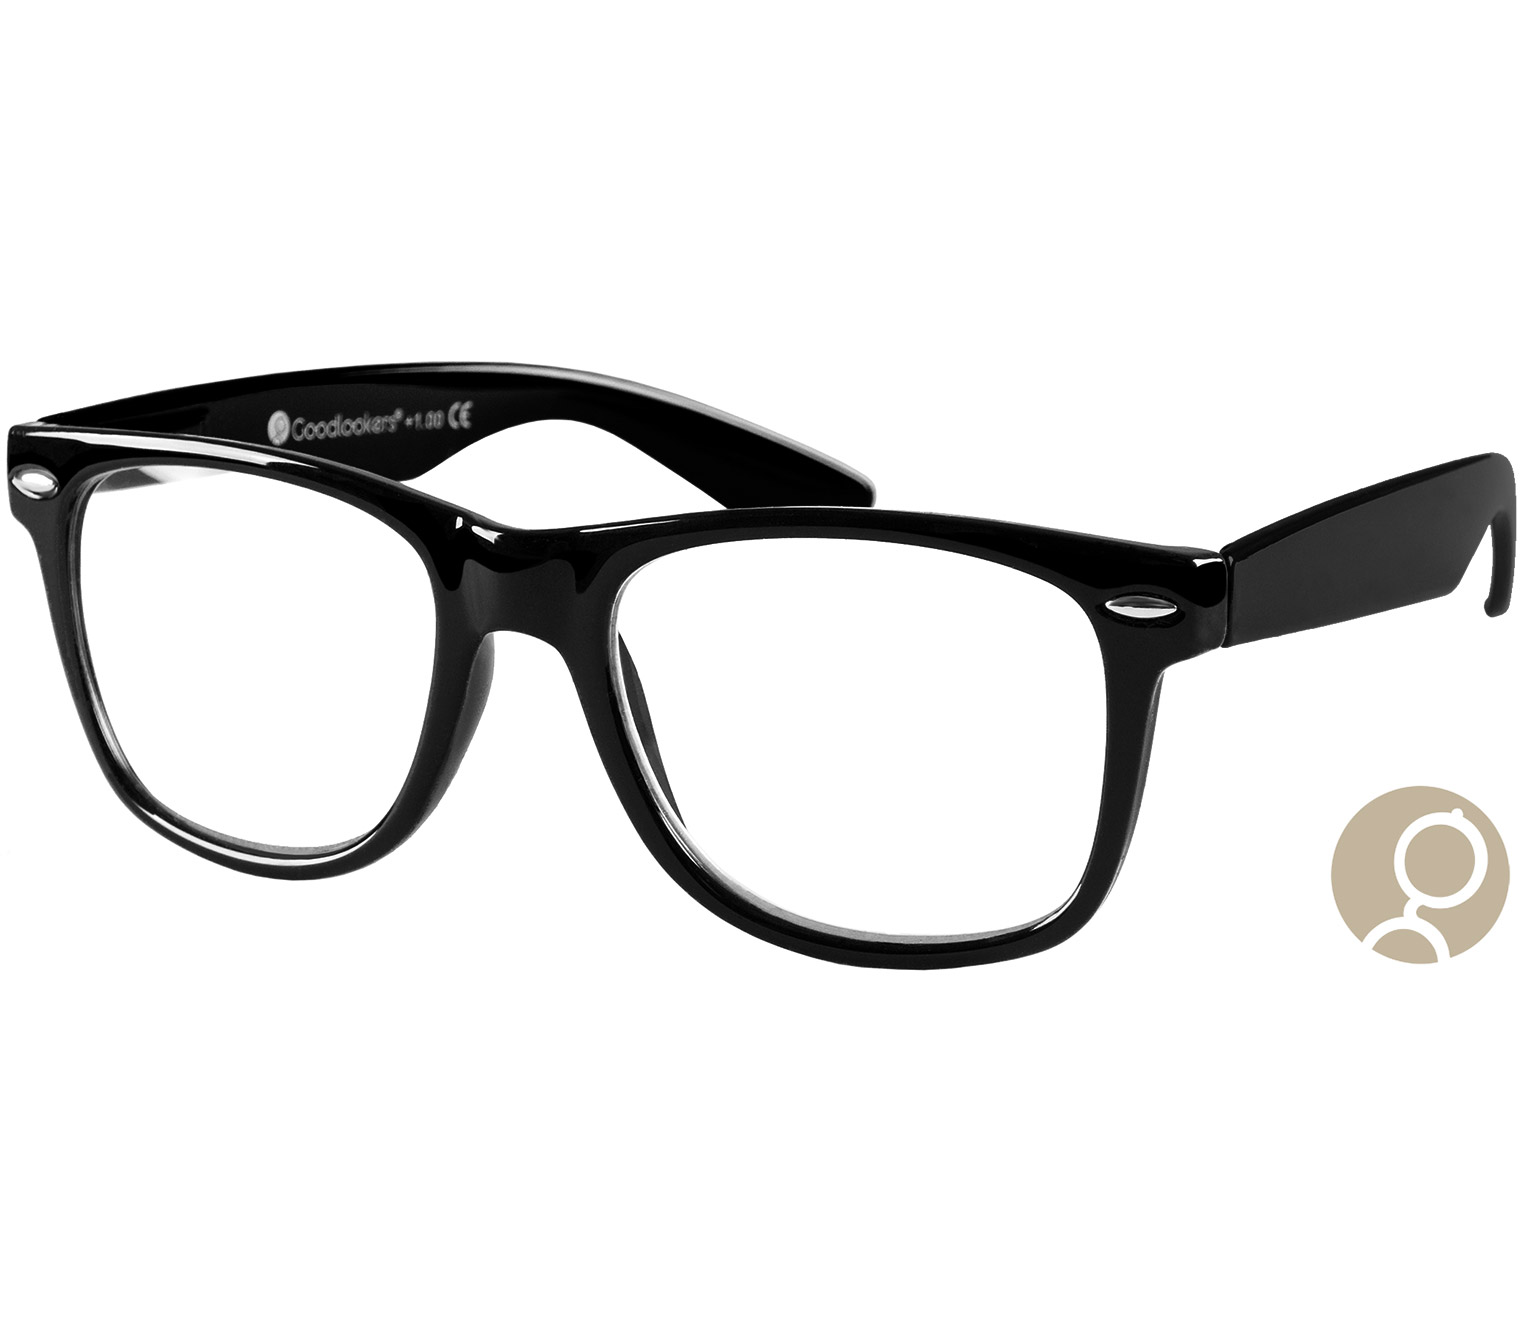 Main Image (Angle) - Billi Big (Black) Retro Reading Glasses